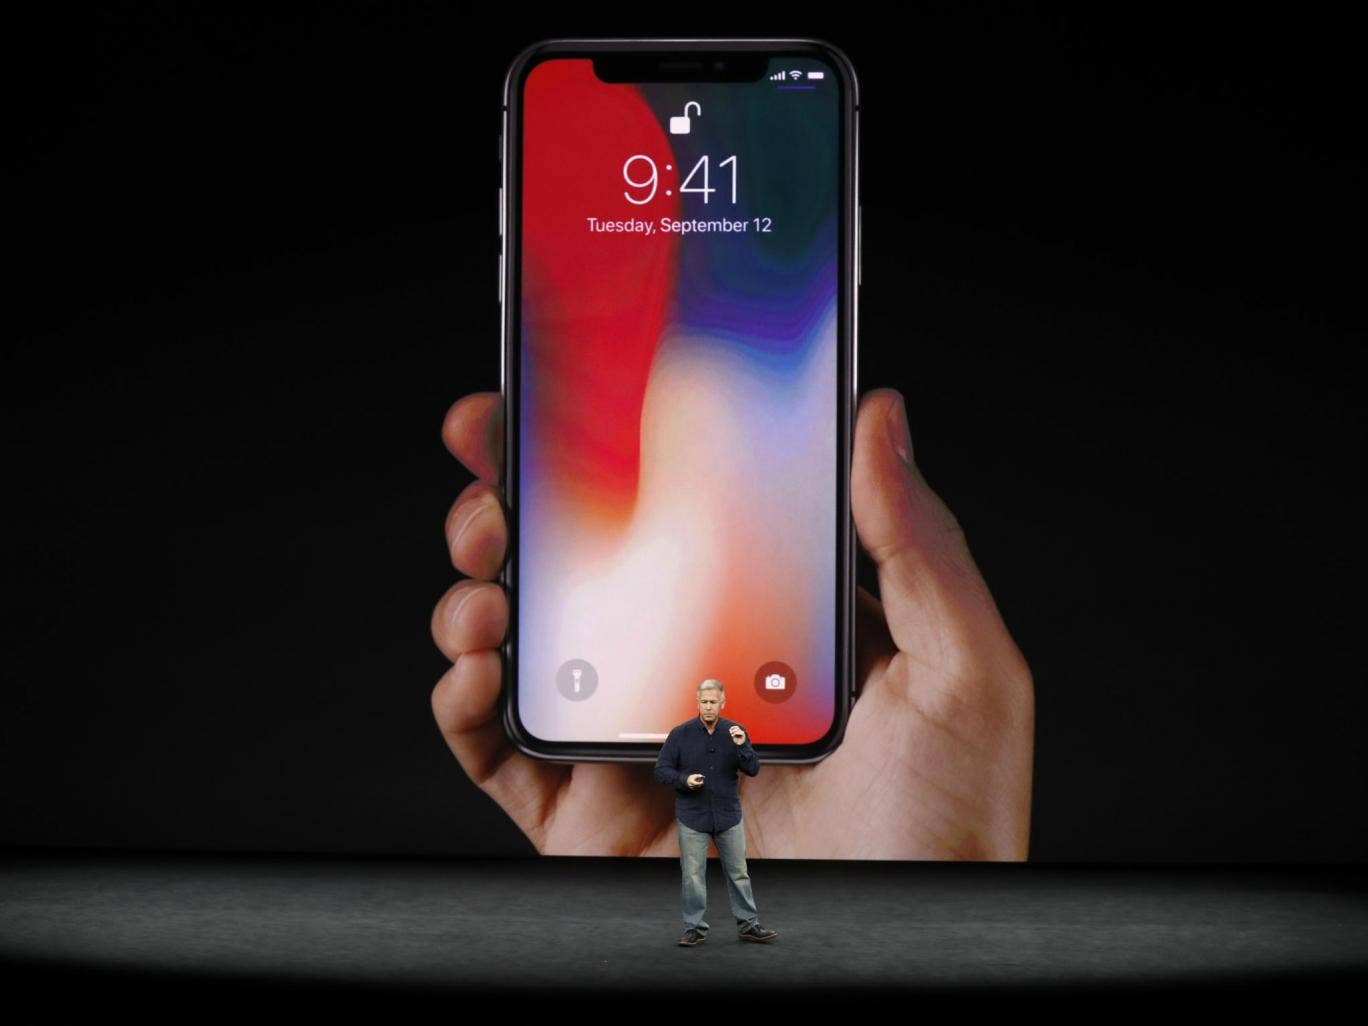 iPhone X malfunctions at launch - Apple